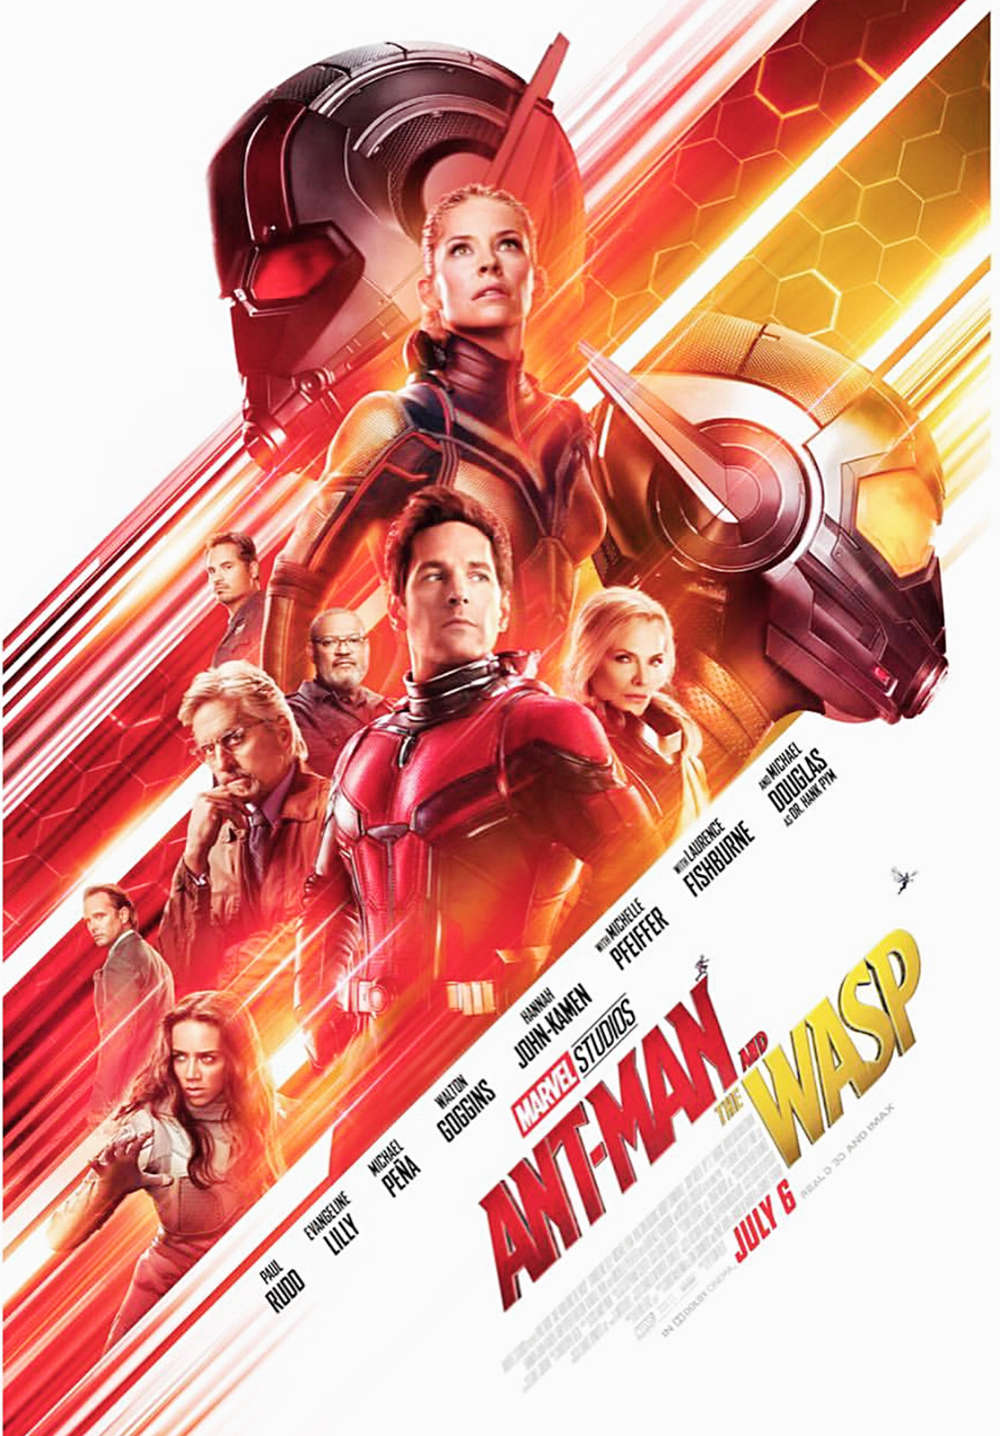 You are currently viewing Notes On A Film: Ant-Man And The Wasp